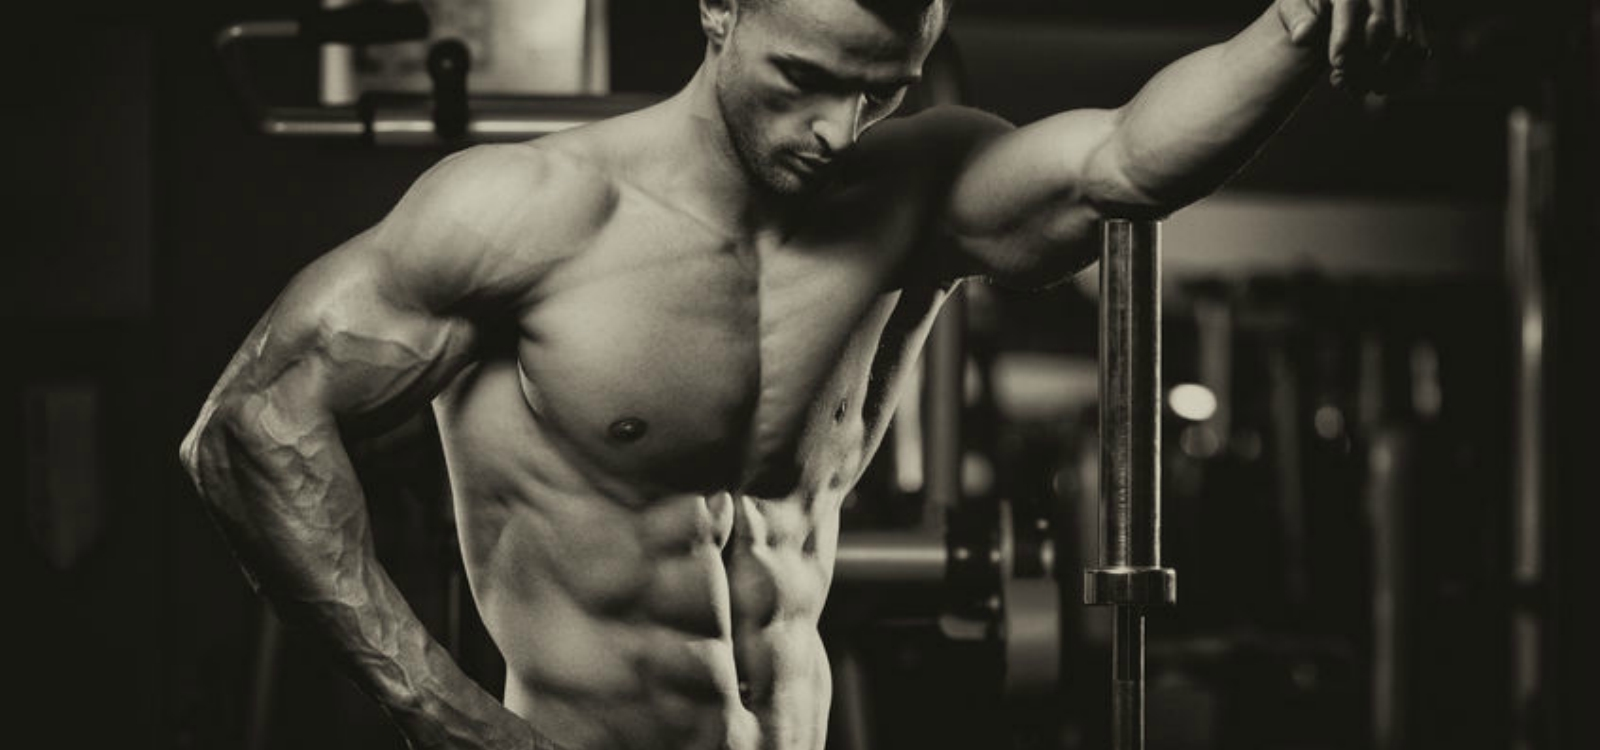 The Easiest Way to Know If You Should Cut or Bulk